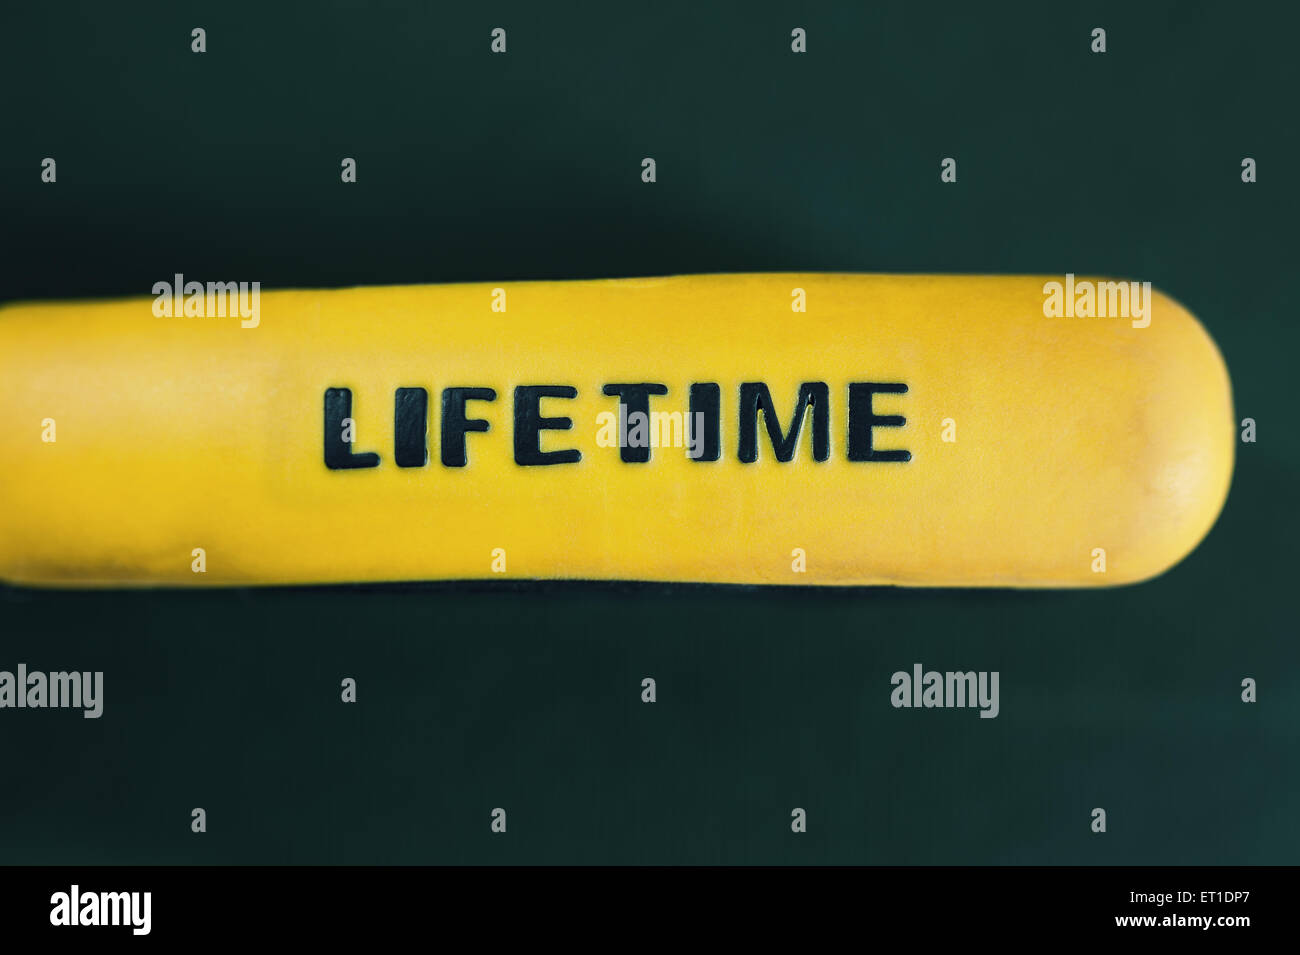 Simple composition, title lifetime on yellow rubberized stick, green background in blur. - Stock Image